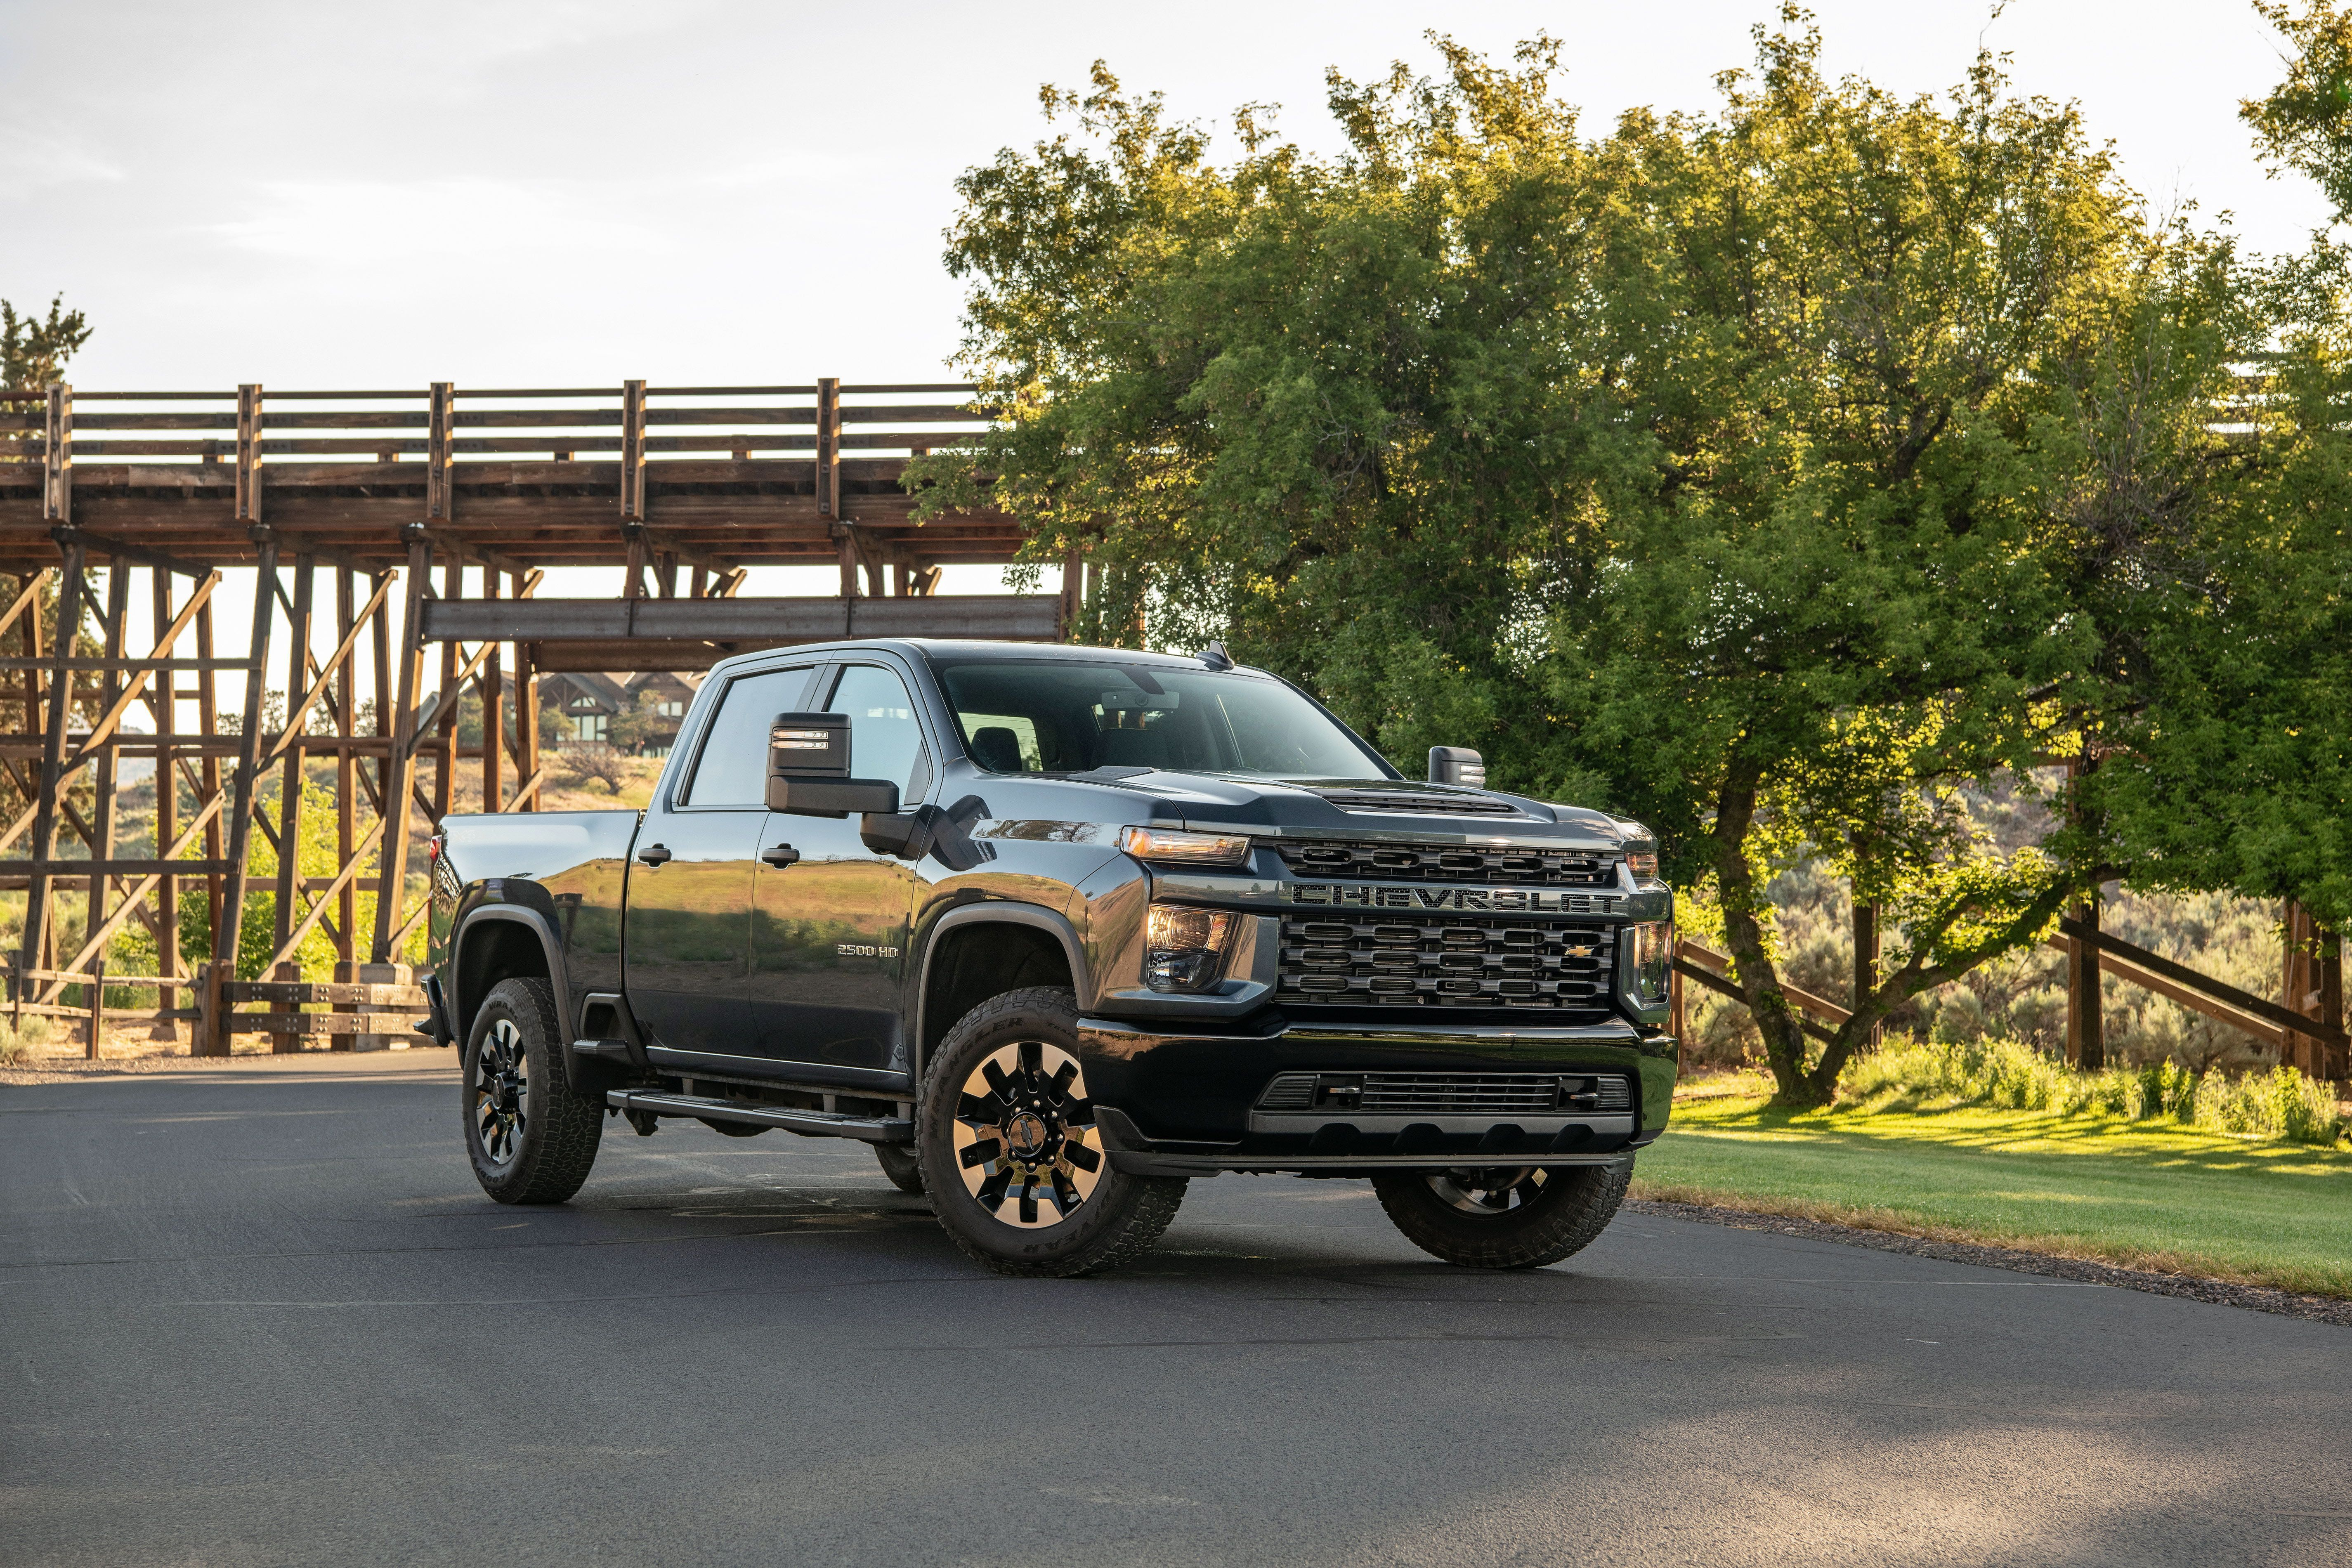 Review 2020 Chevrolet Silverado 2500 Duramax Specs And Images Feels Free To Follow Us Di 2020